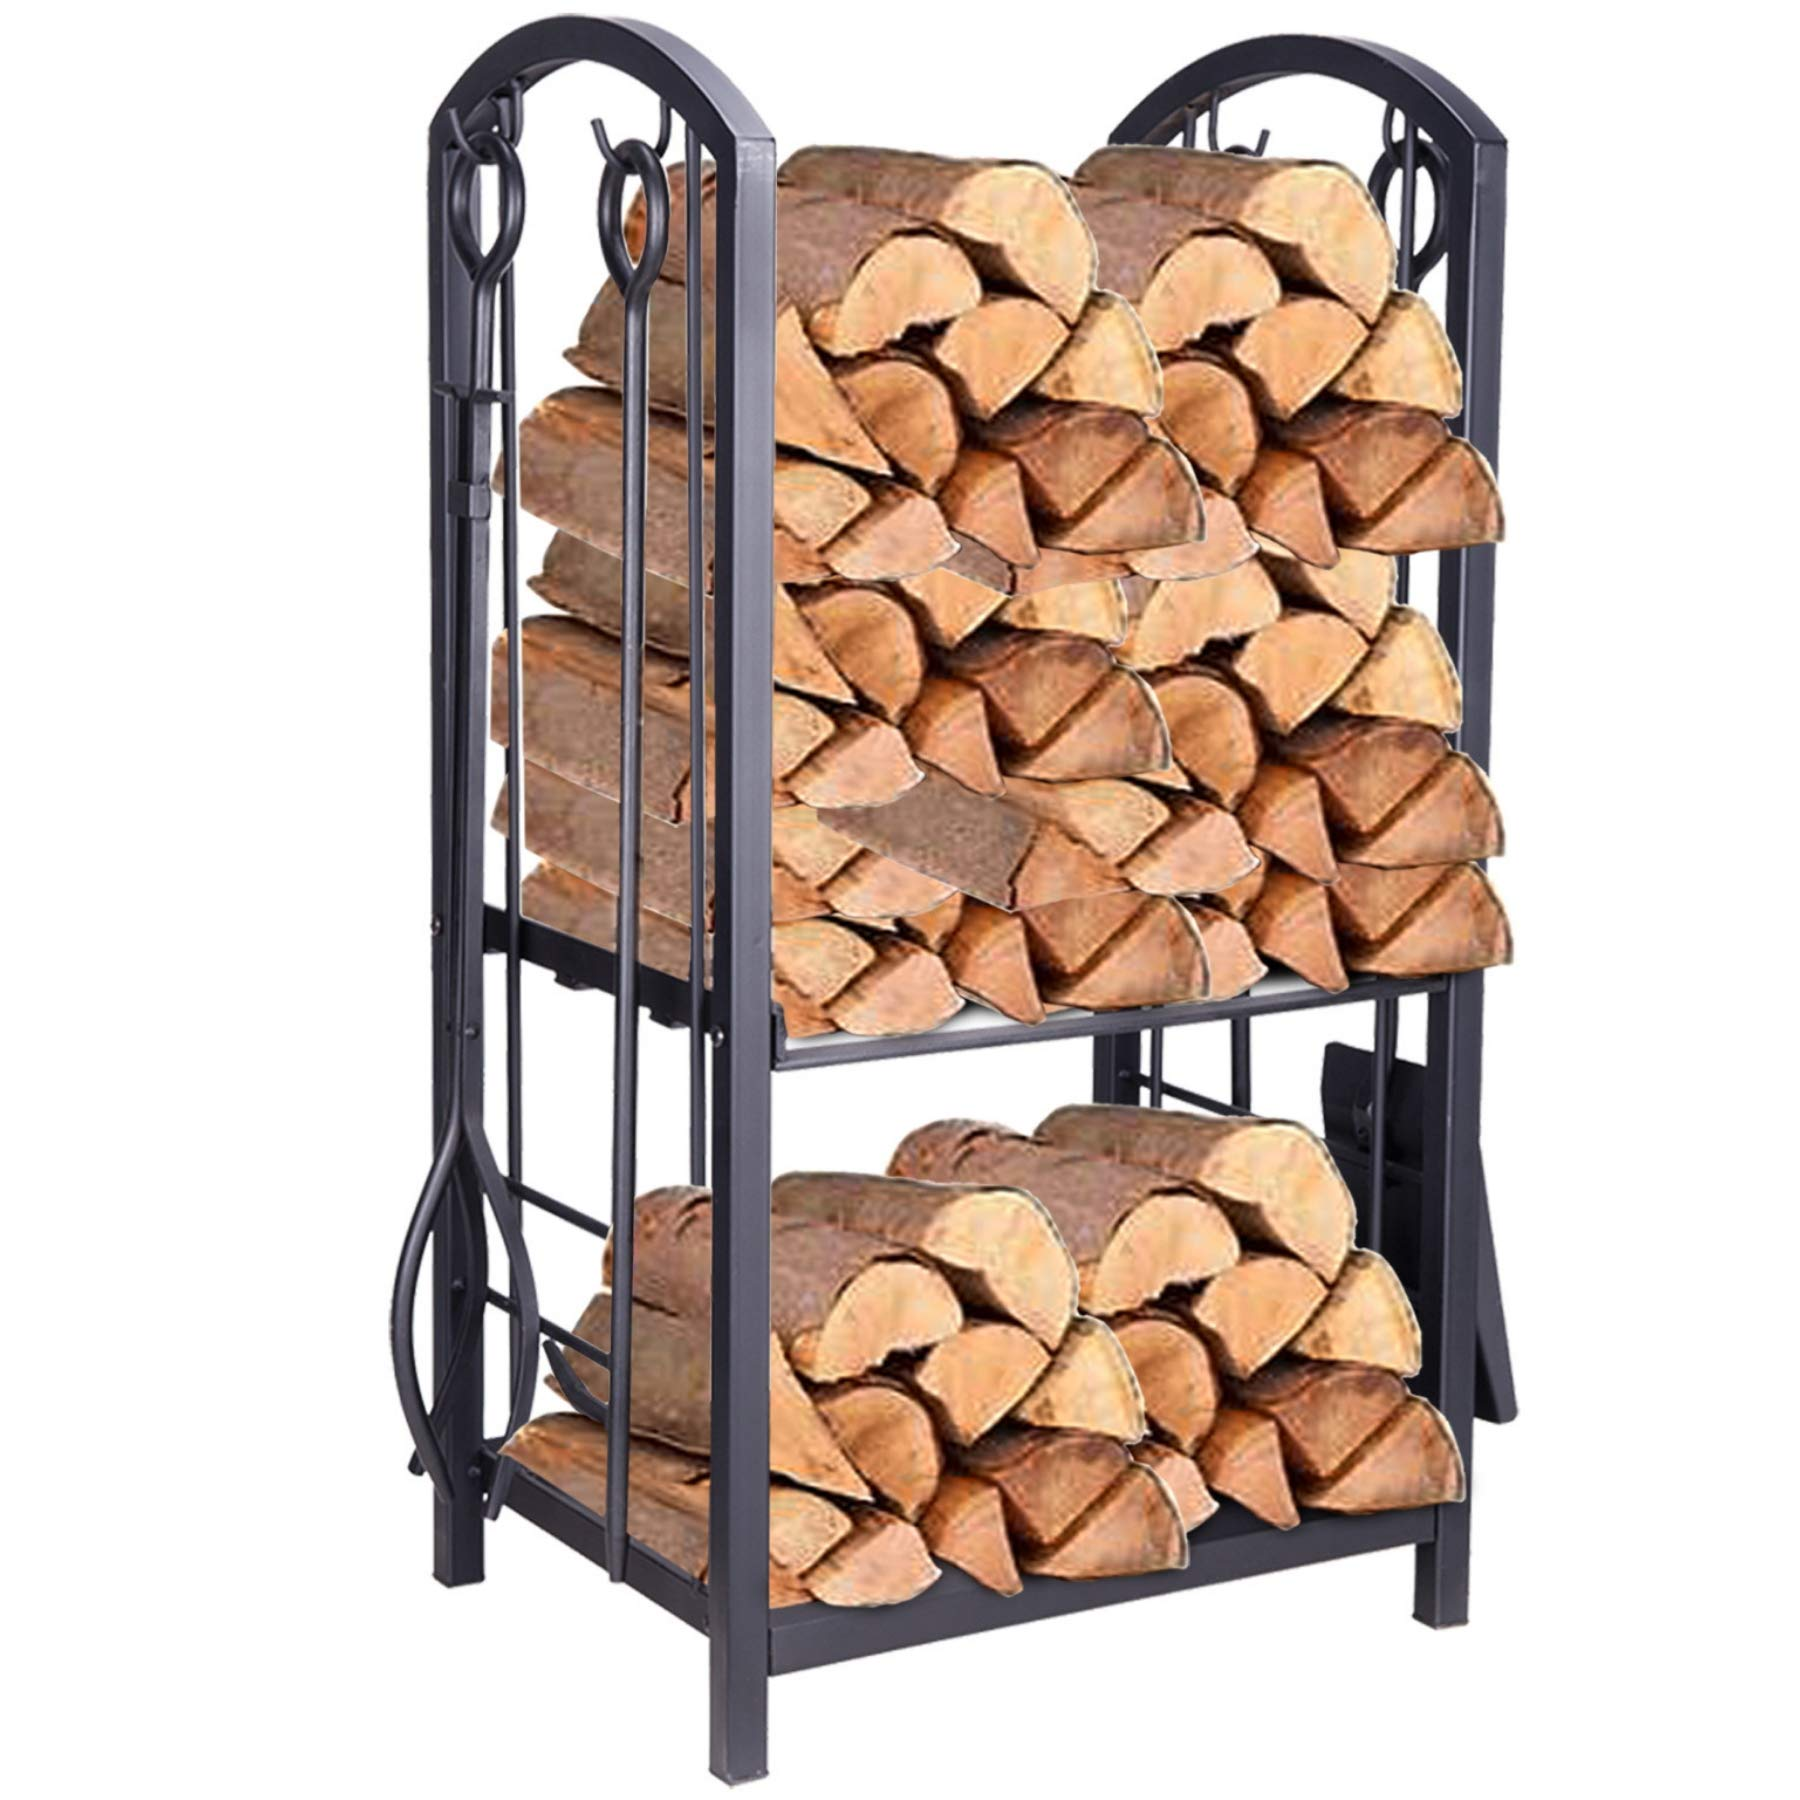 Pinty Firewood Log Rack Firewood Storage Fireplace Tool Set with 4 Tools Indoor Outdoor Firewood Holders Lumber Storage Stacking Black